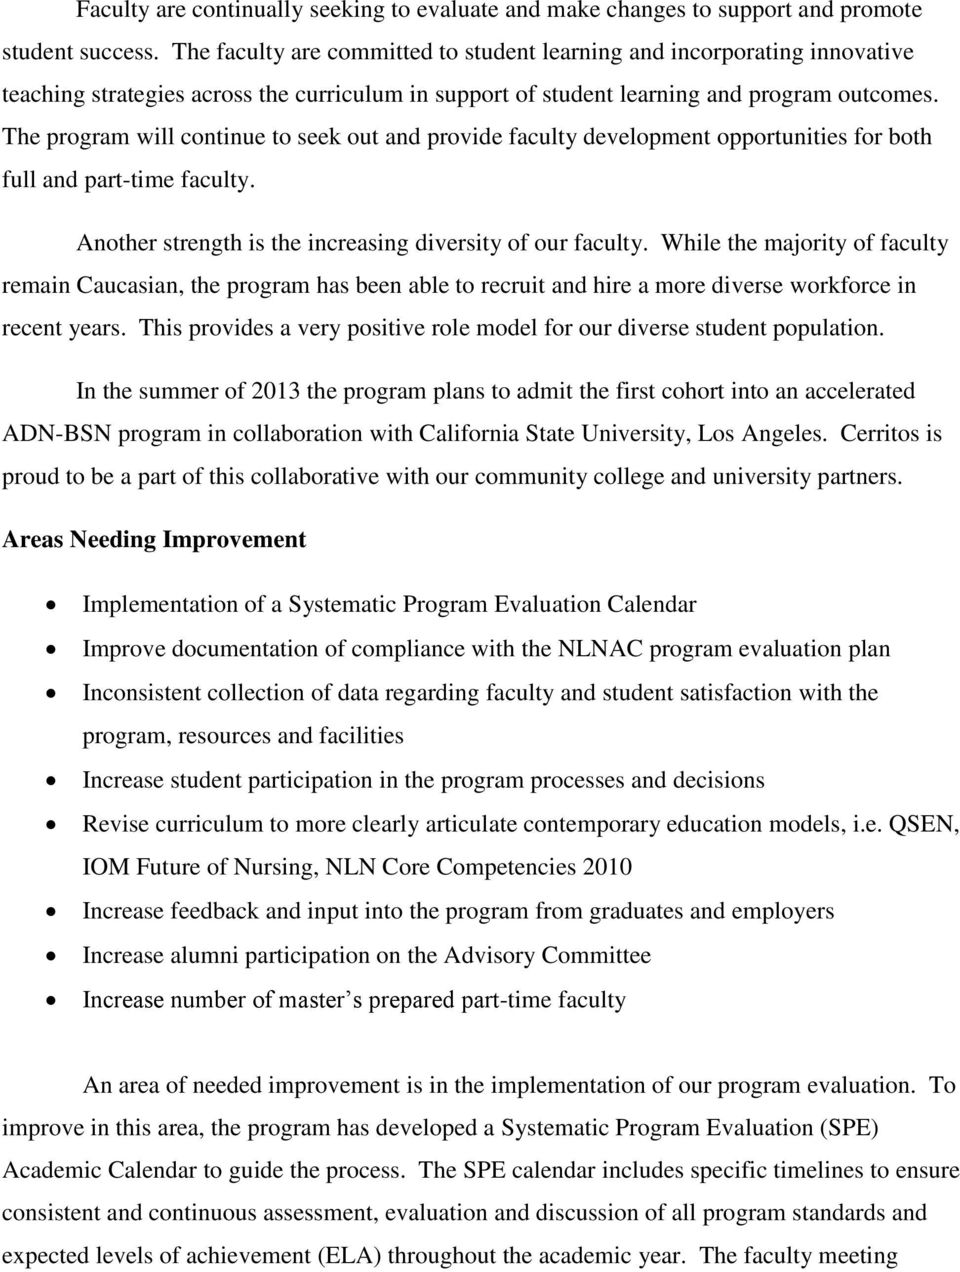 The program will continue to seek out and provide faculty development opportunities for both full and part-time faculty. Another strength is the increasing diversity of our faculty.